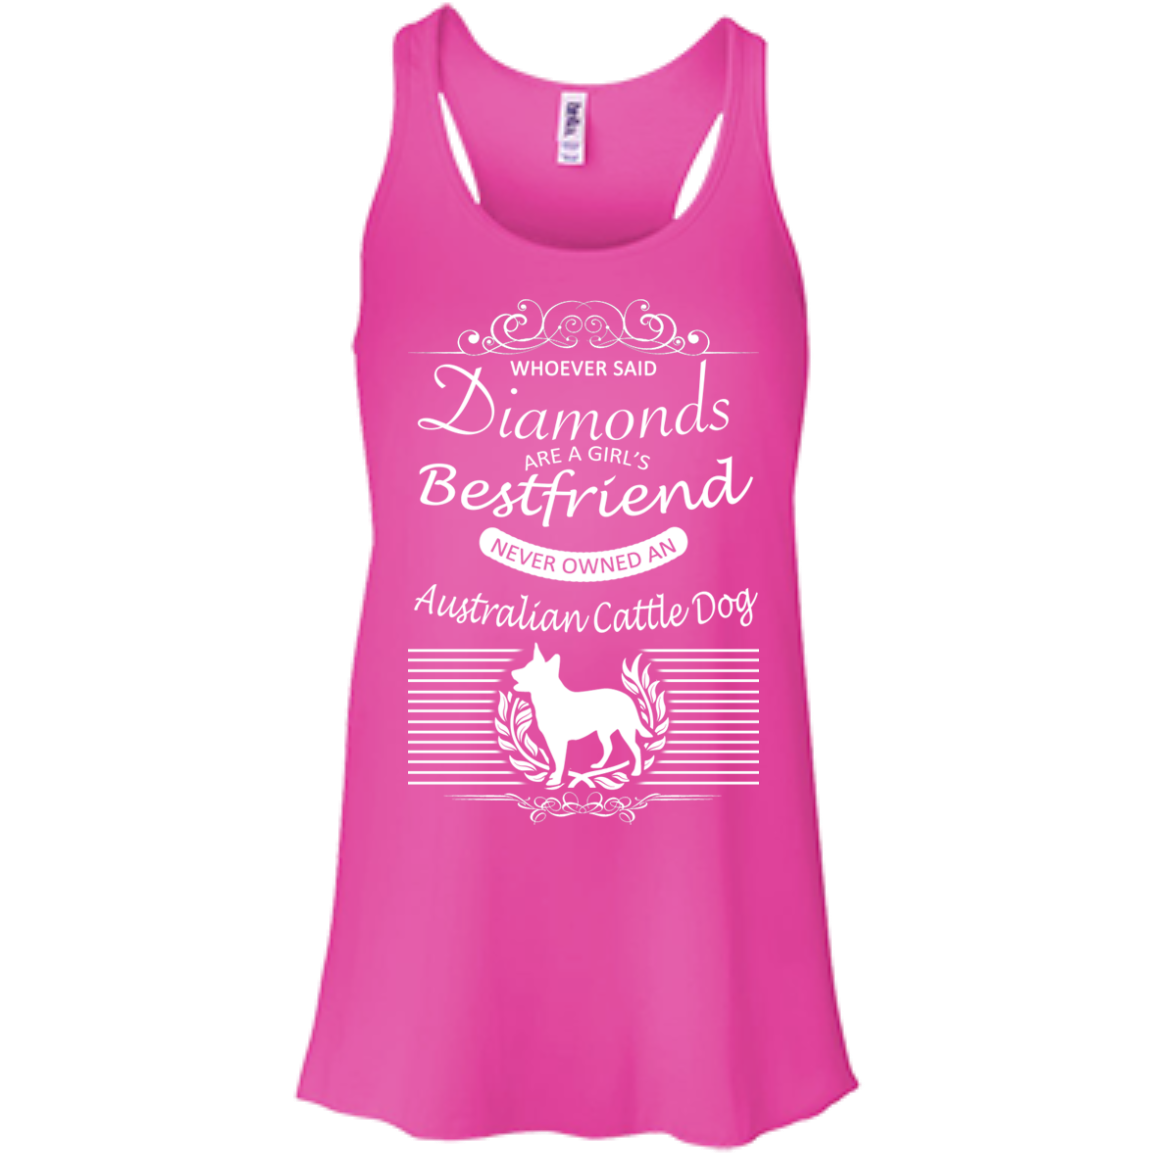 Whoever Said Diamonds Are A Girls Best Friend Never Owned An Australian Cattle Dog Flowy Racerback Tanks